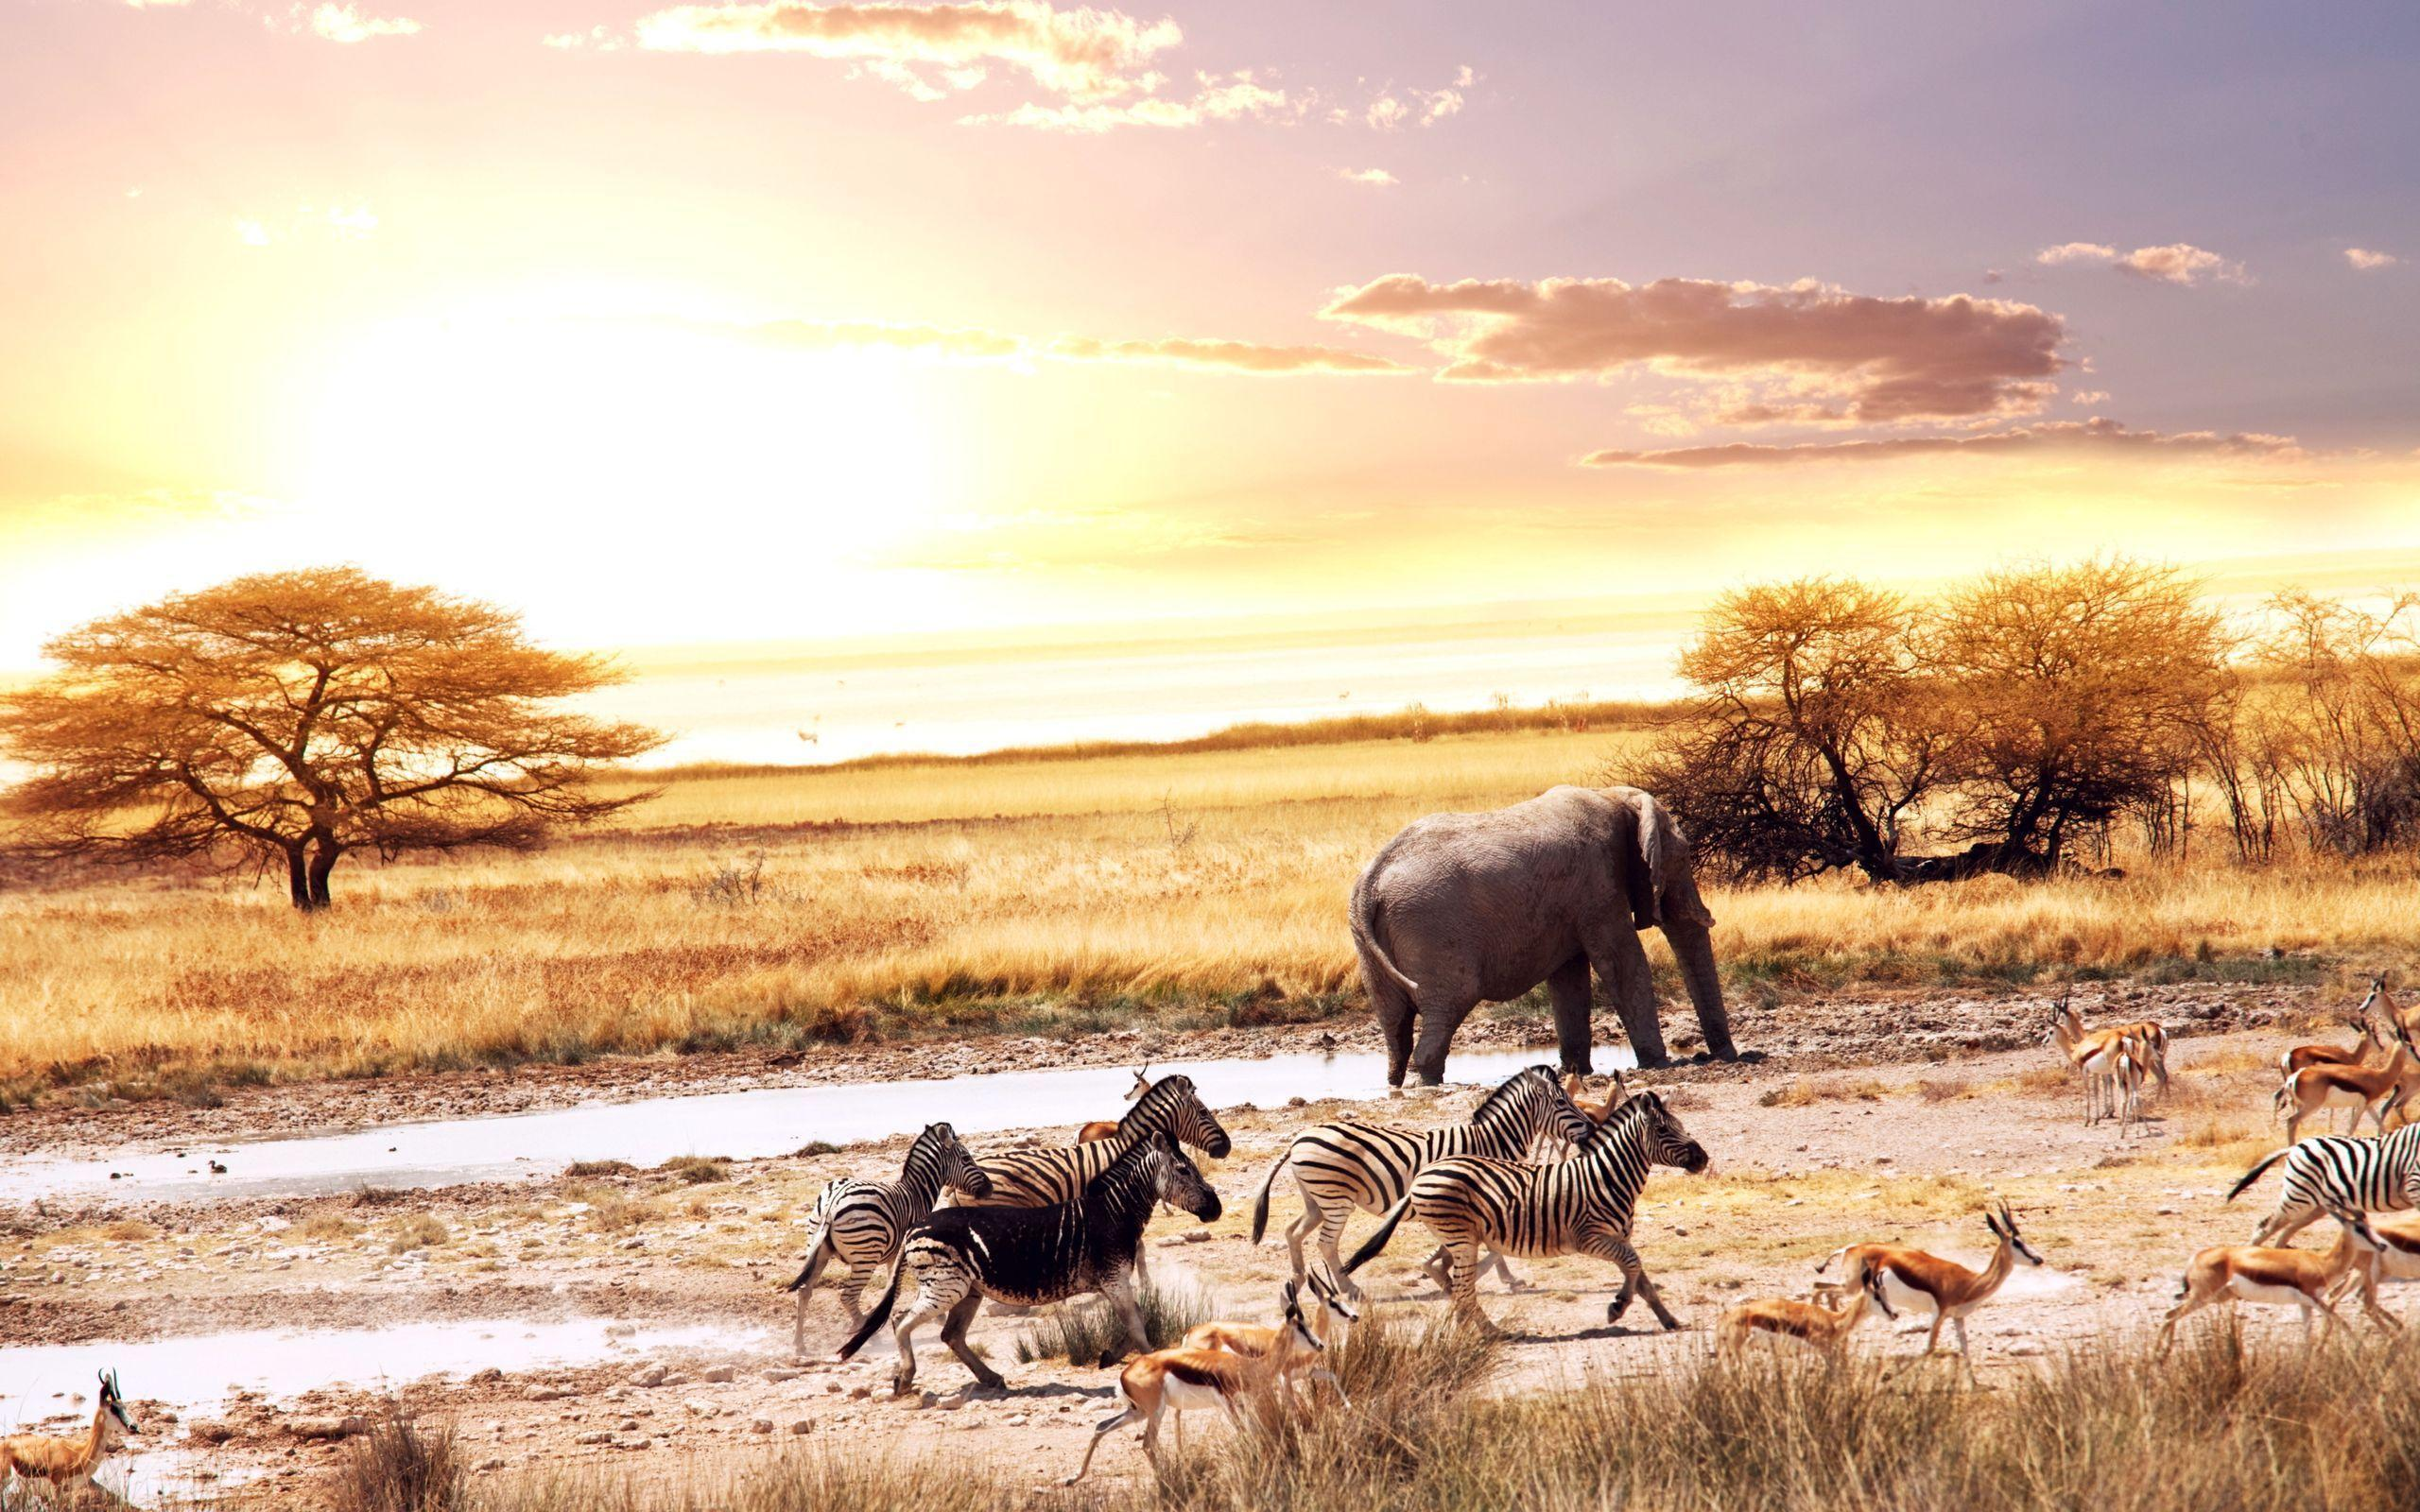 Wild Animals in Africa Wallpaper « Wallpaperz.